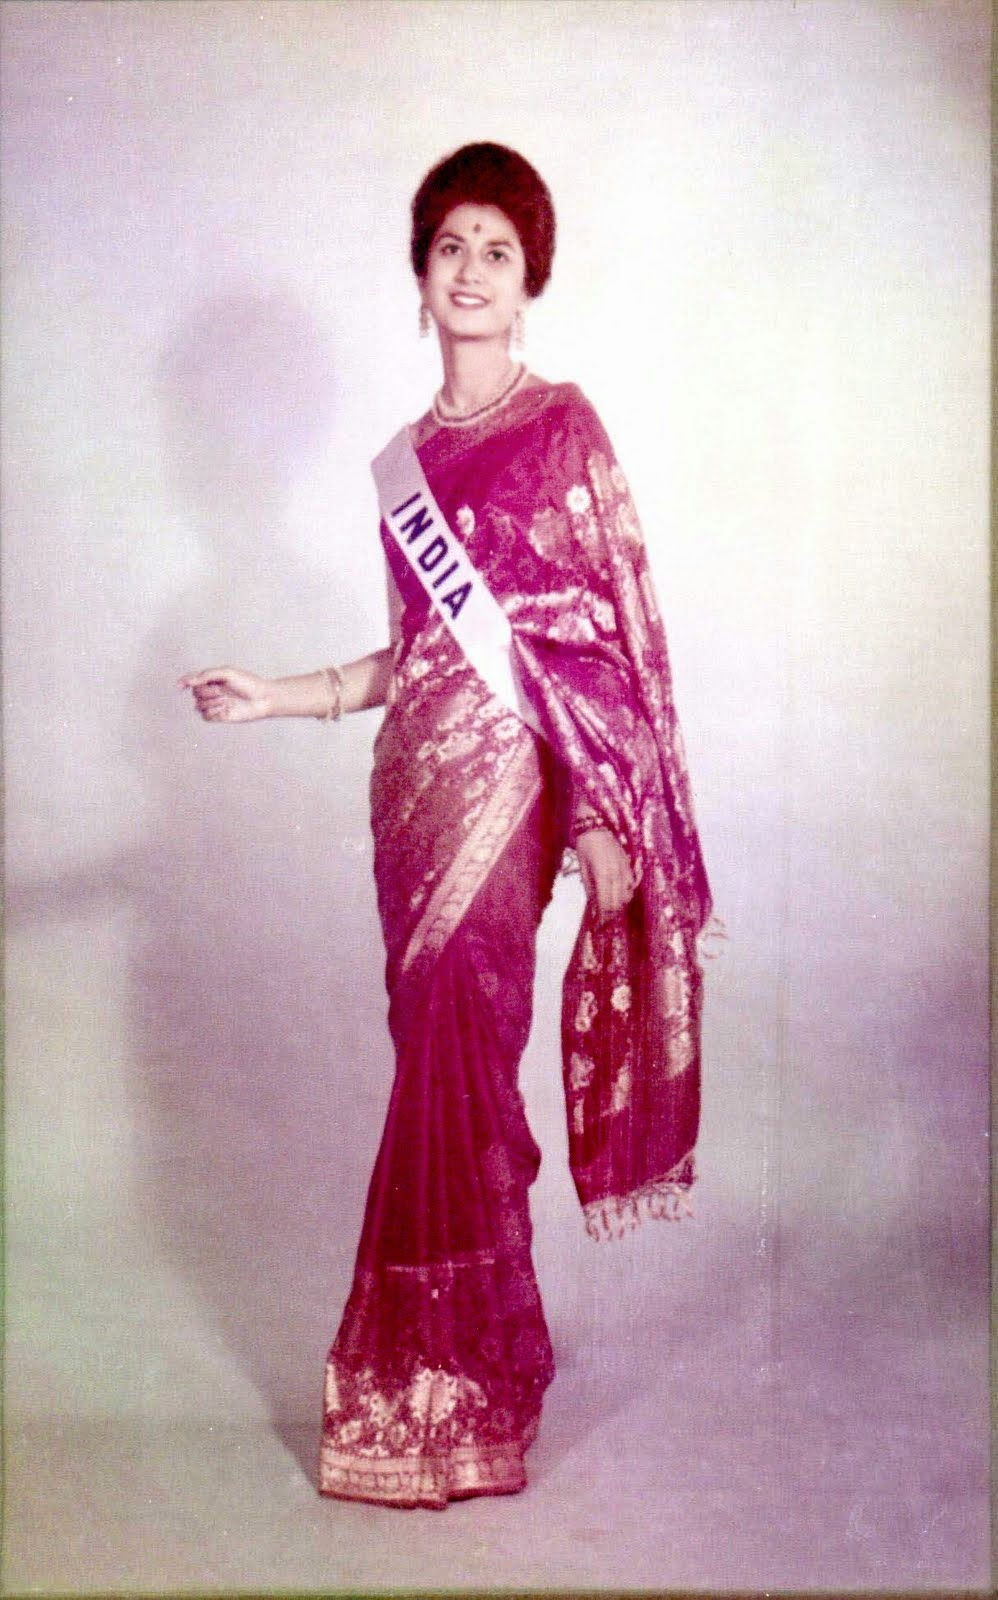 Meher Castelino Mistri, Miss India 1964